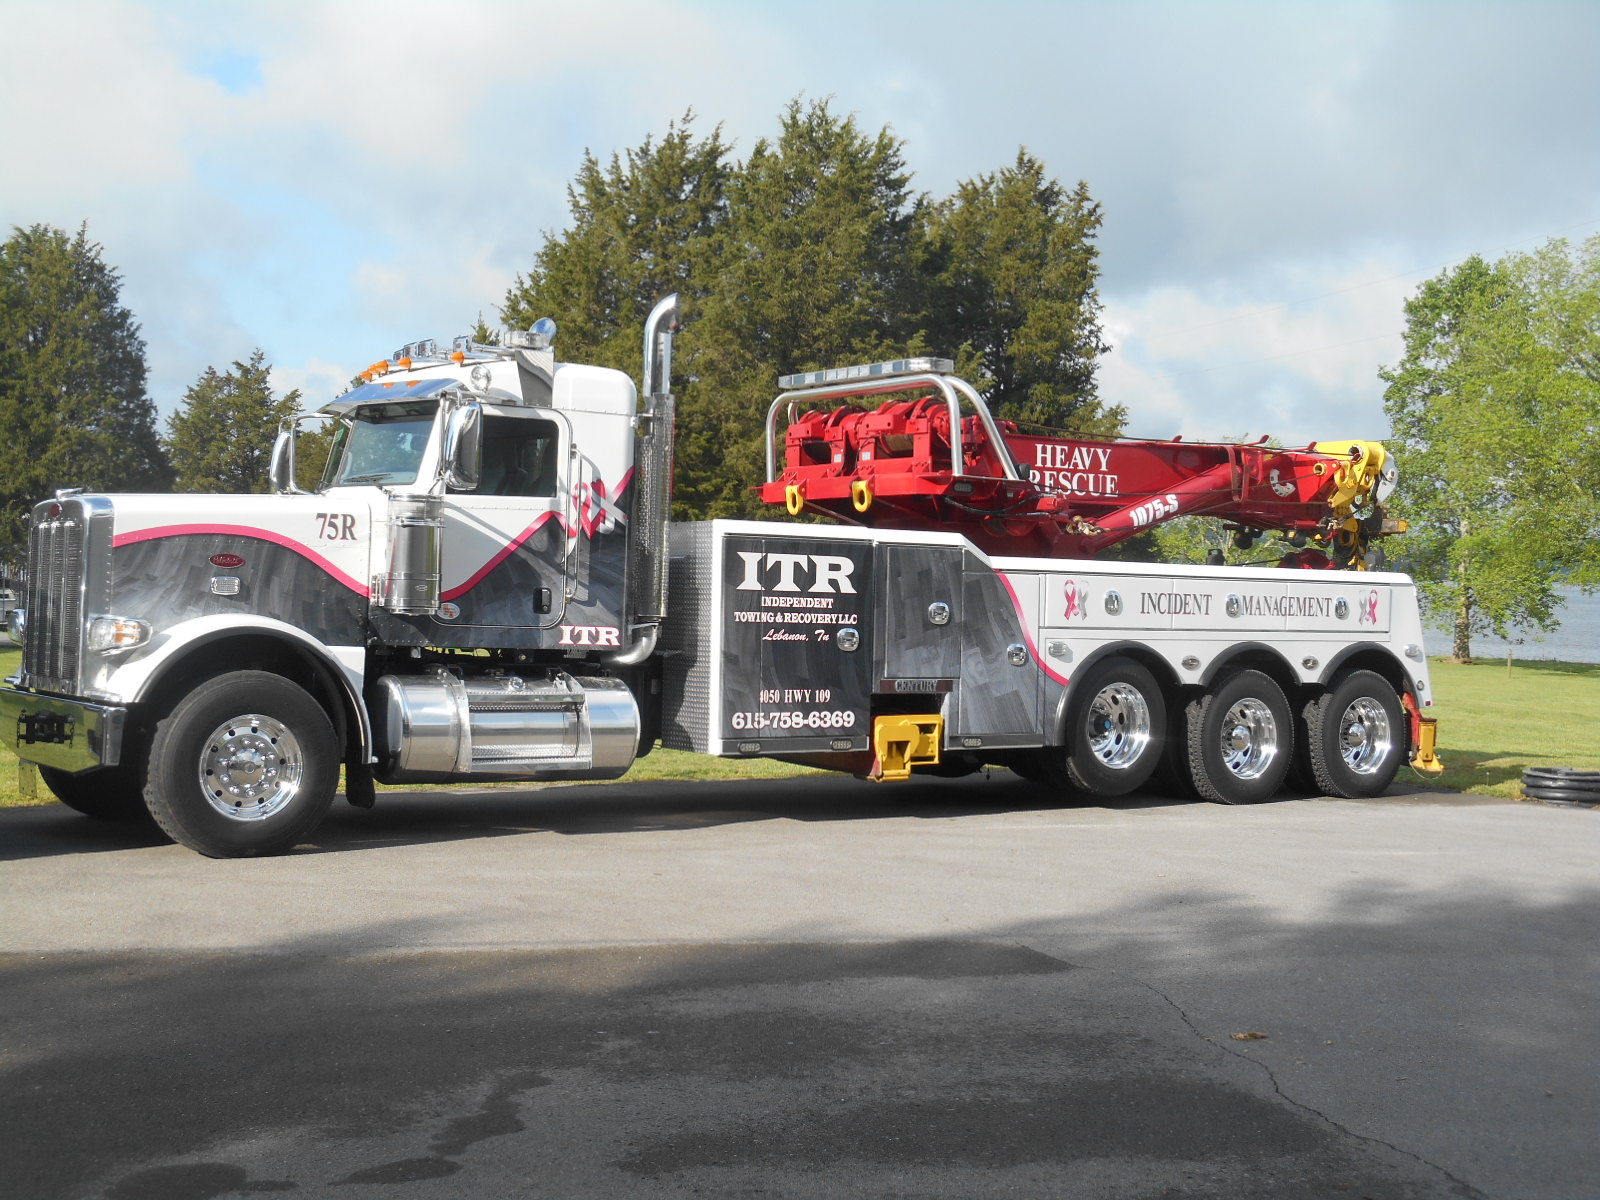 Independent Towing and Recovery LLC 4050 Hwy 109 N Lebanon, TN